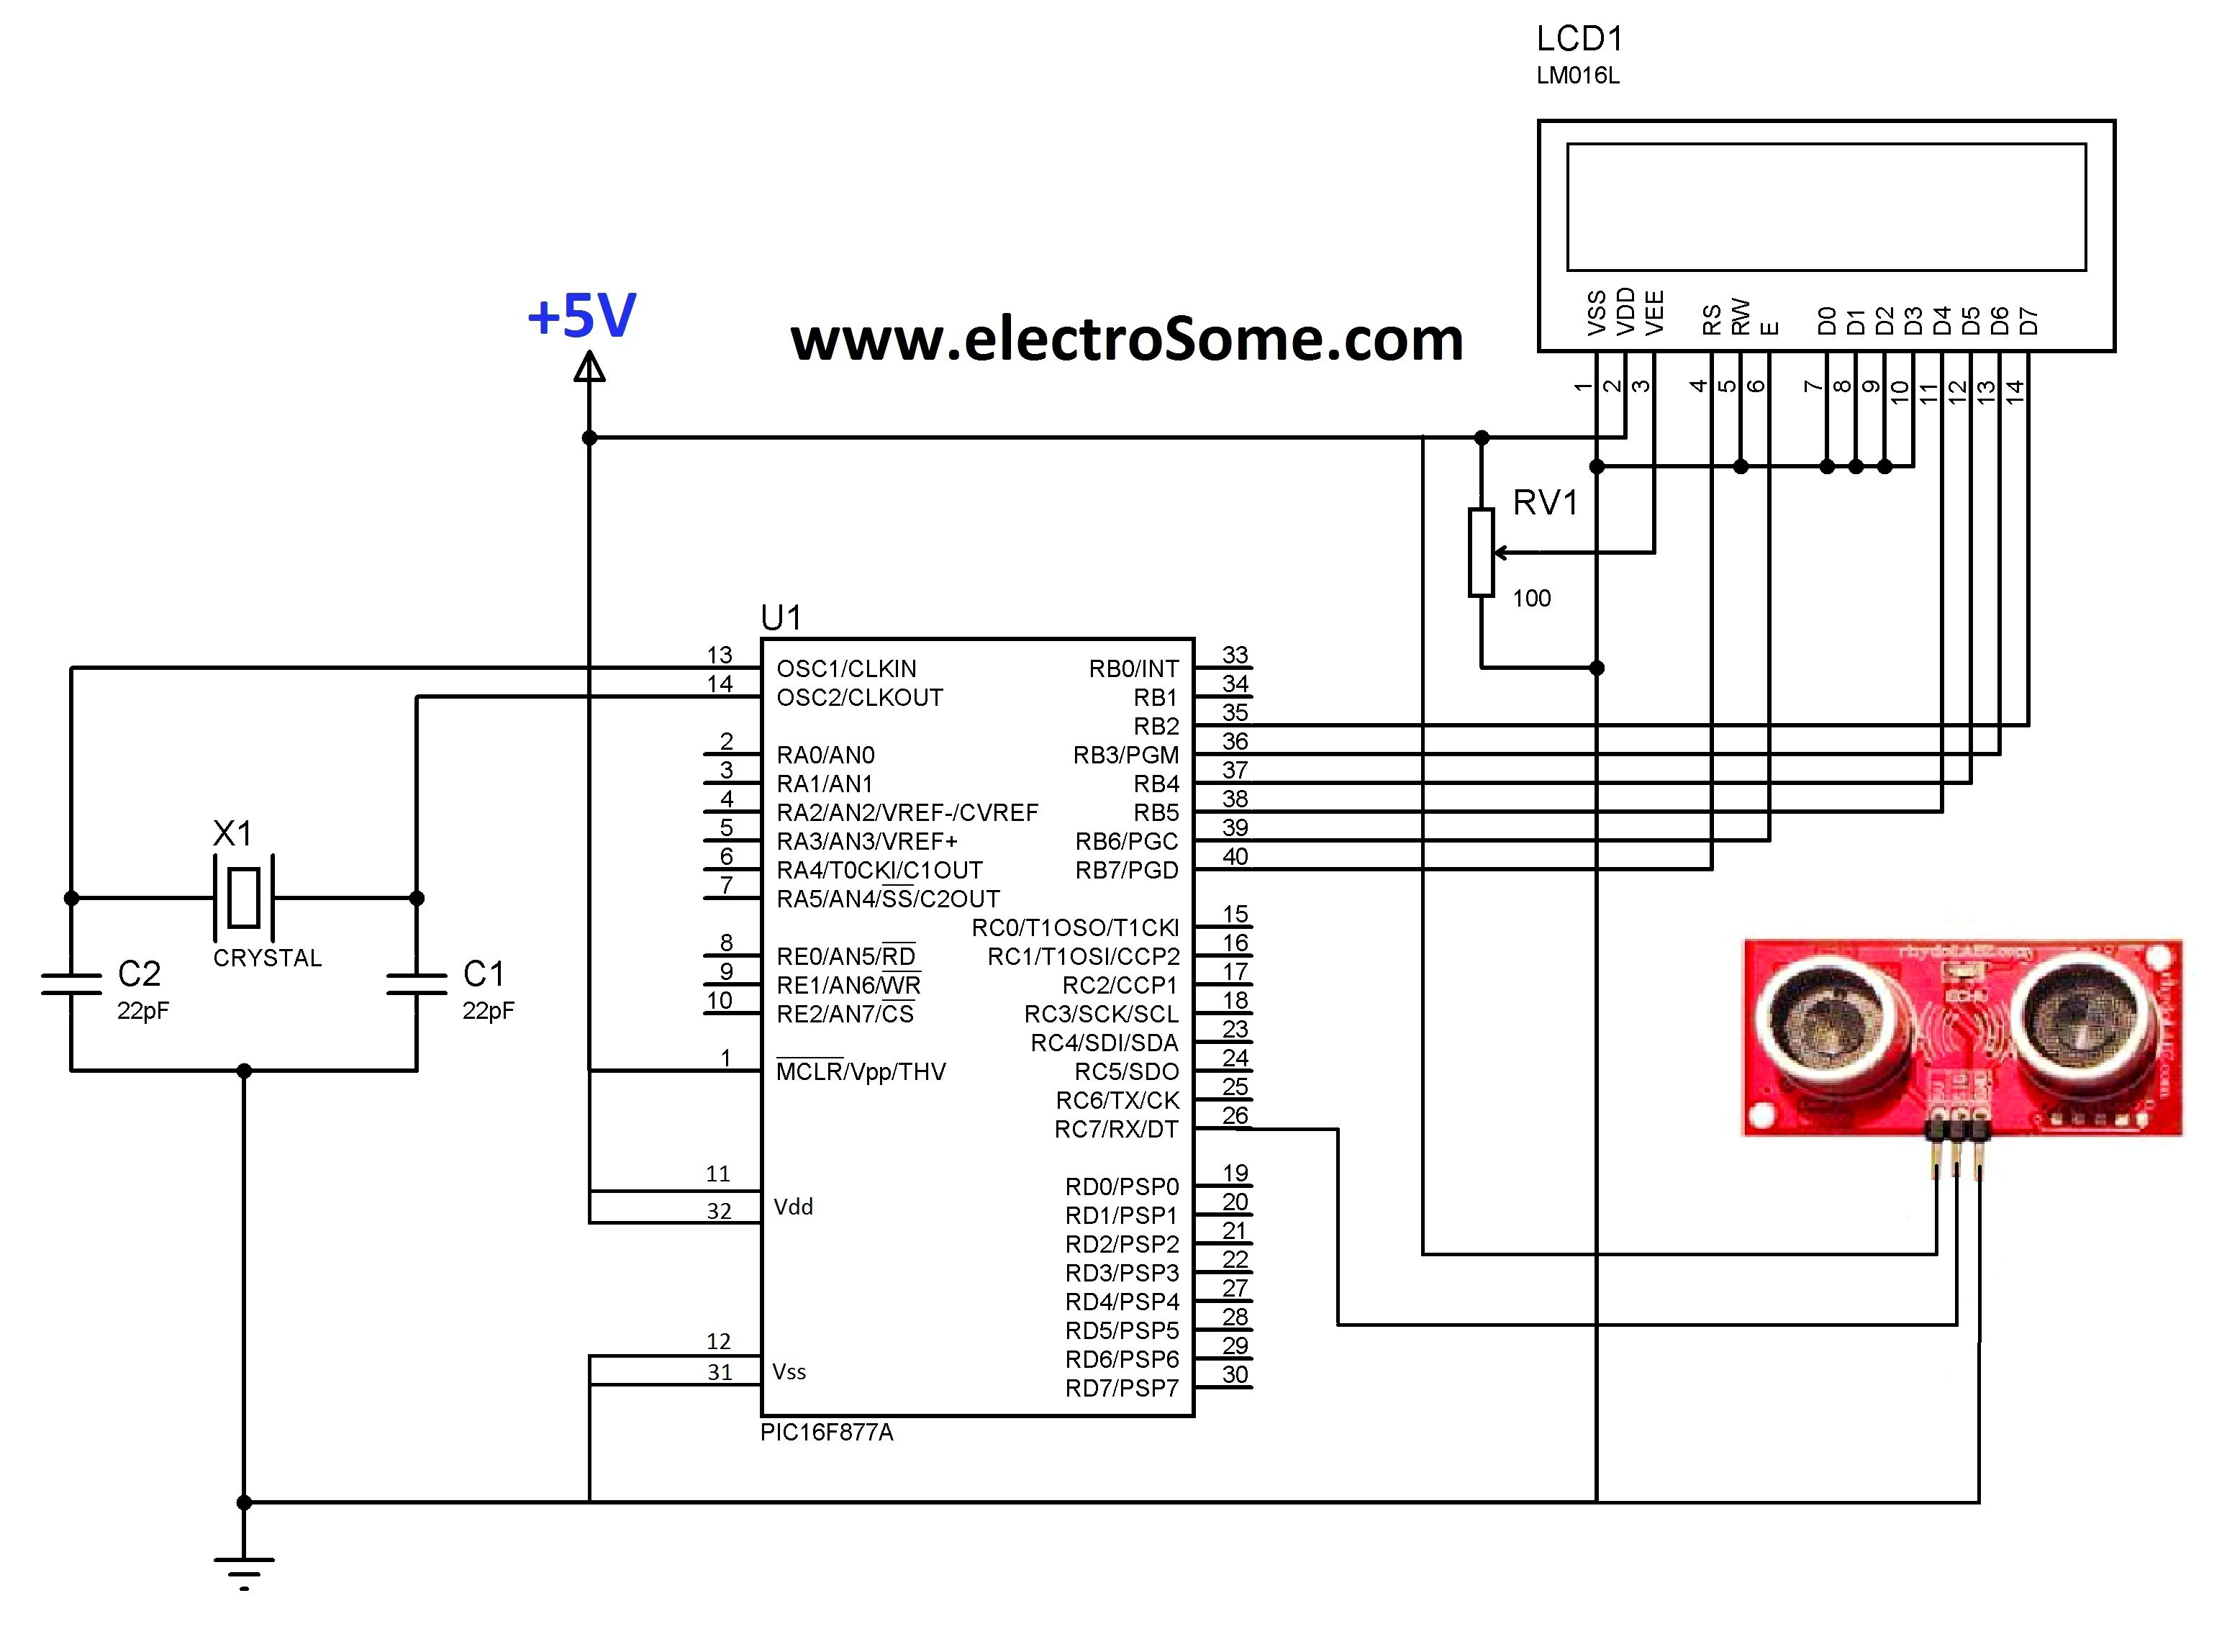 tork lighting contactor wiring diagram example electrical circuit u2022 rh electricdiagram today Electrically Held Contactor Wiring Diagram Generator Transfer Switch Wiring Diagram